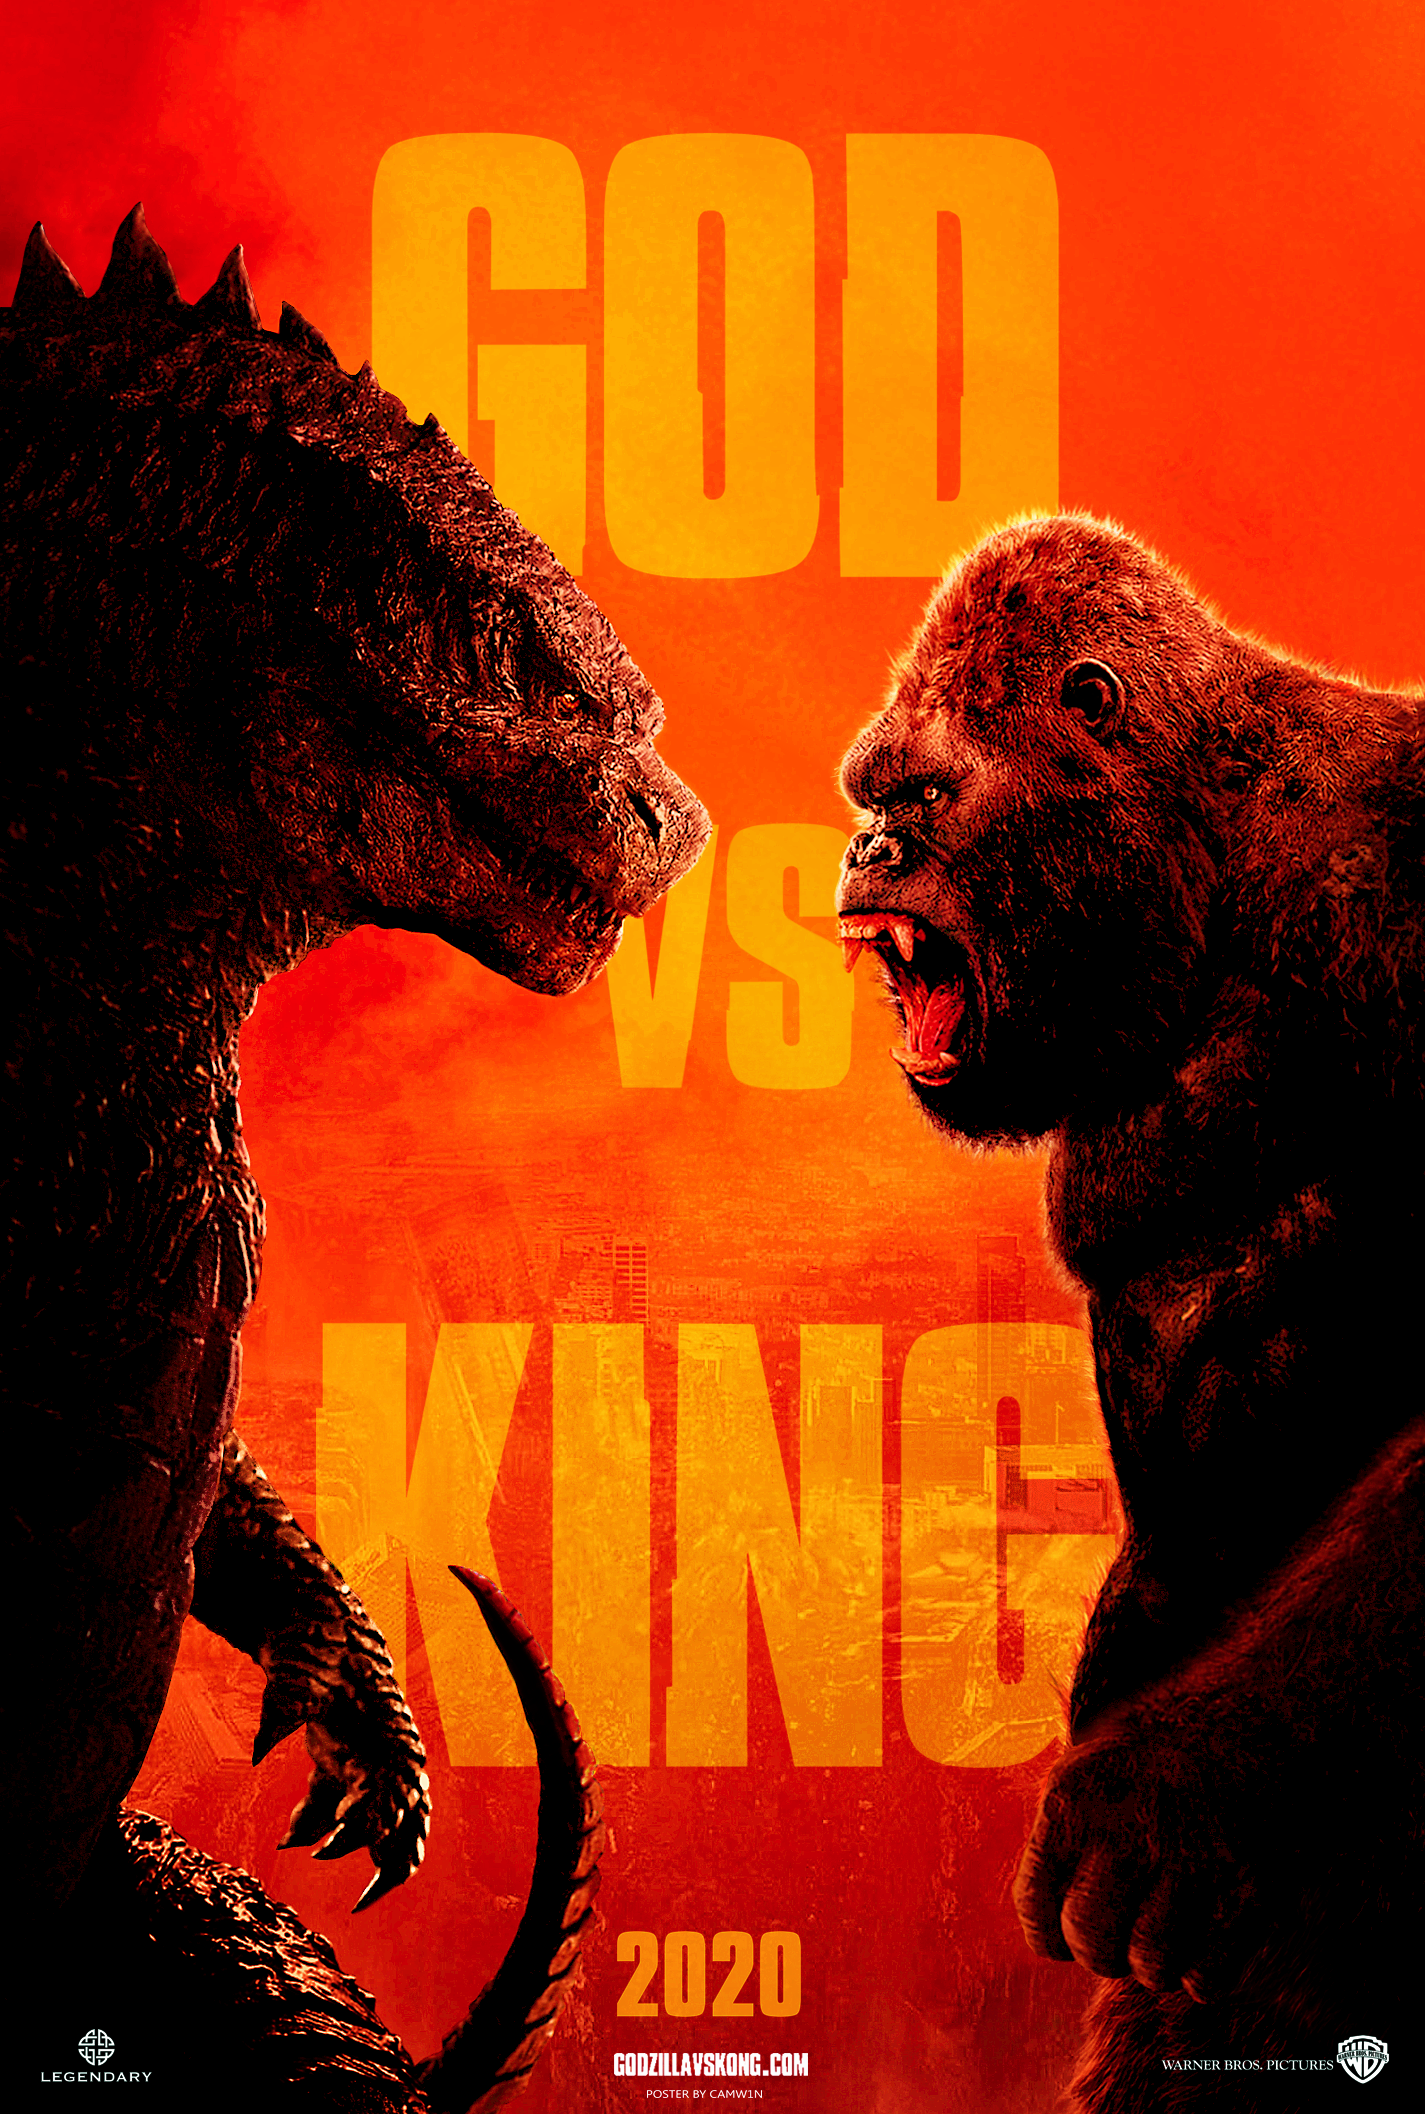 GODZILLA KONG favourites by MnstrFrc on DeviantArt